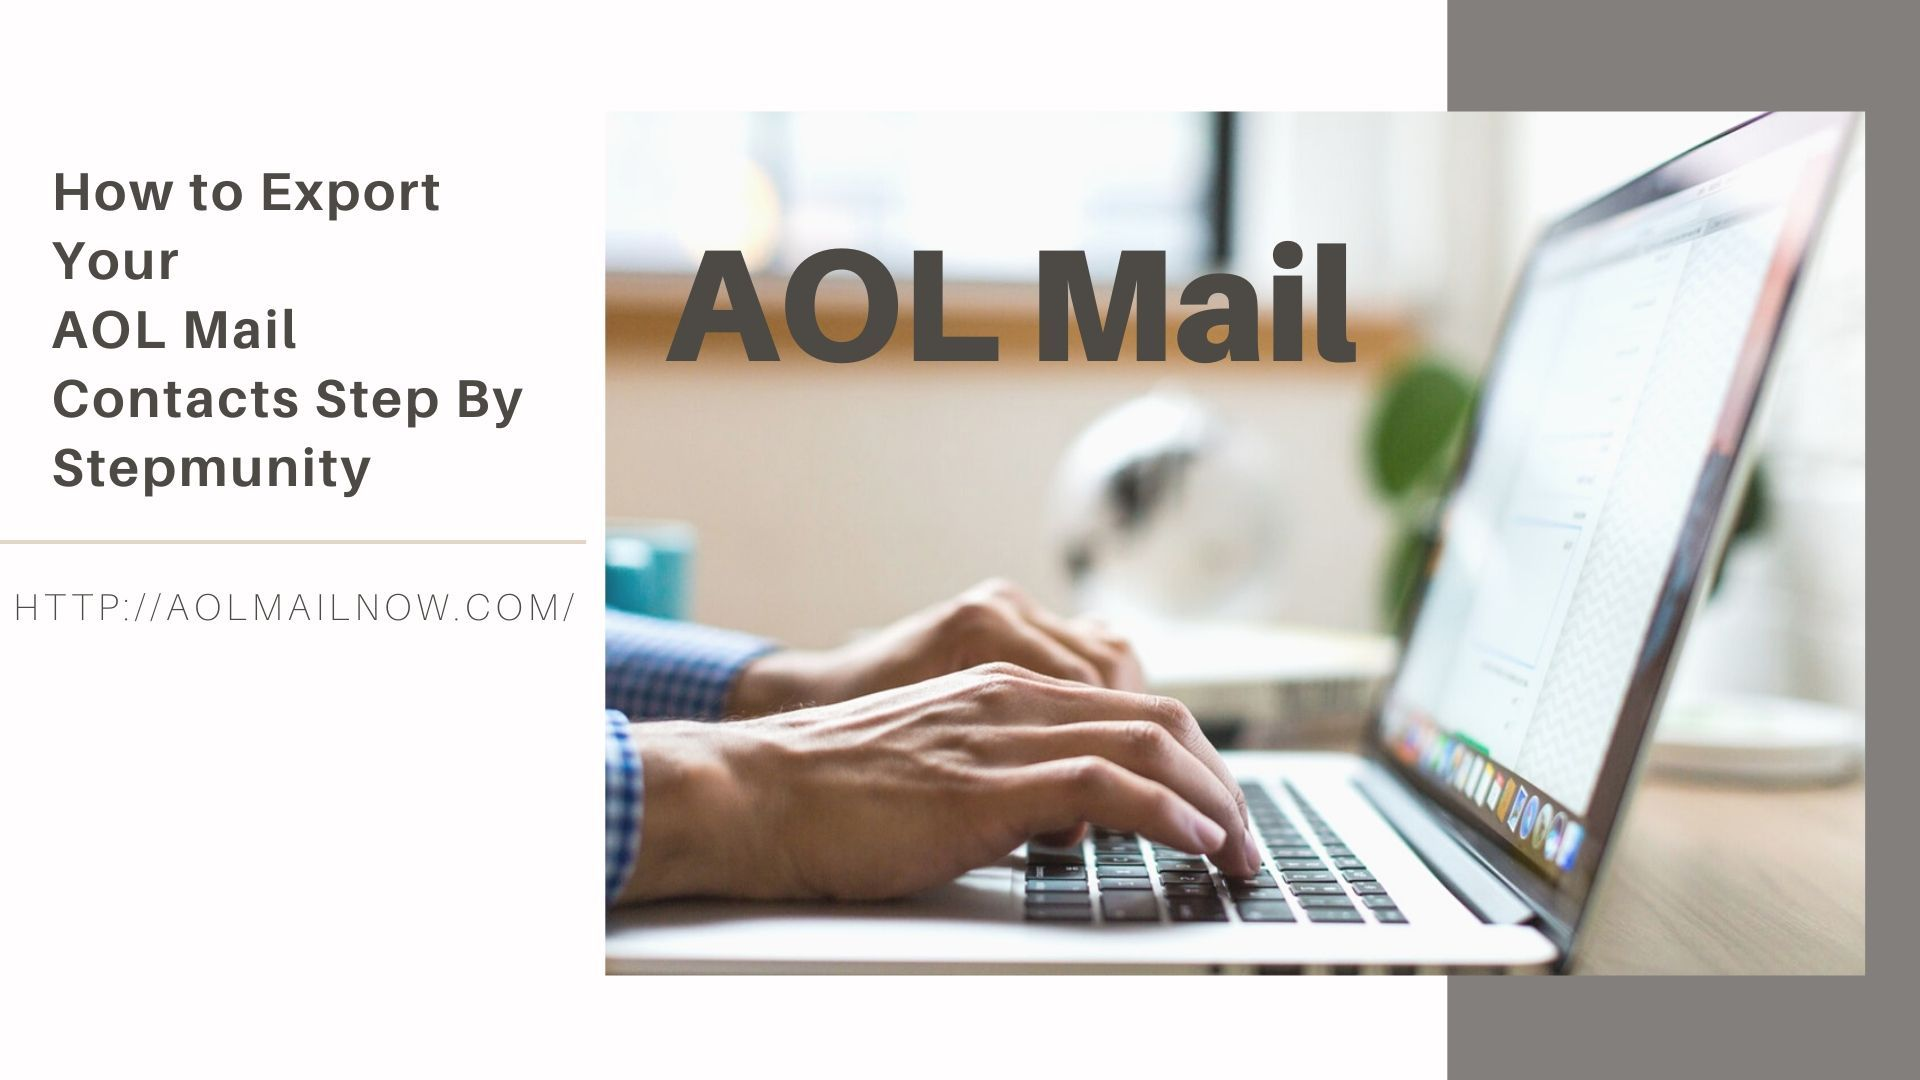 You have many contacts in your AOL Mail address book. If